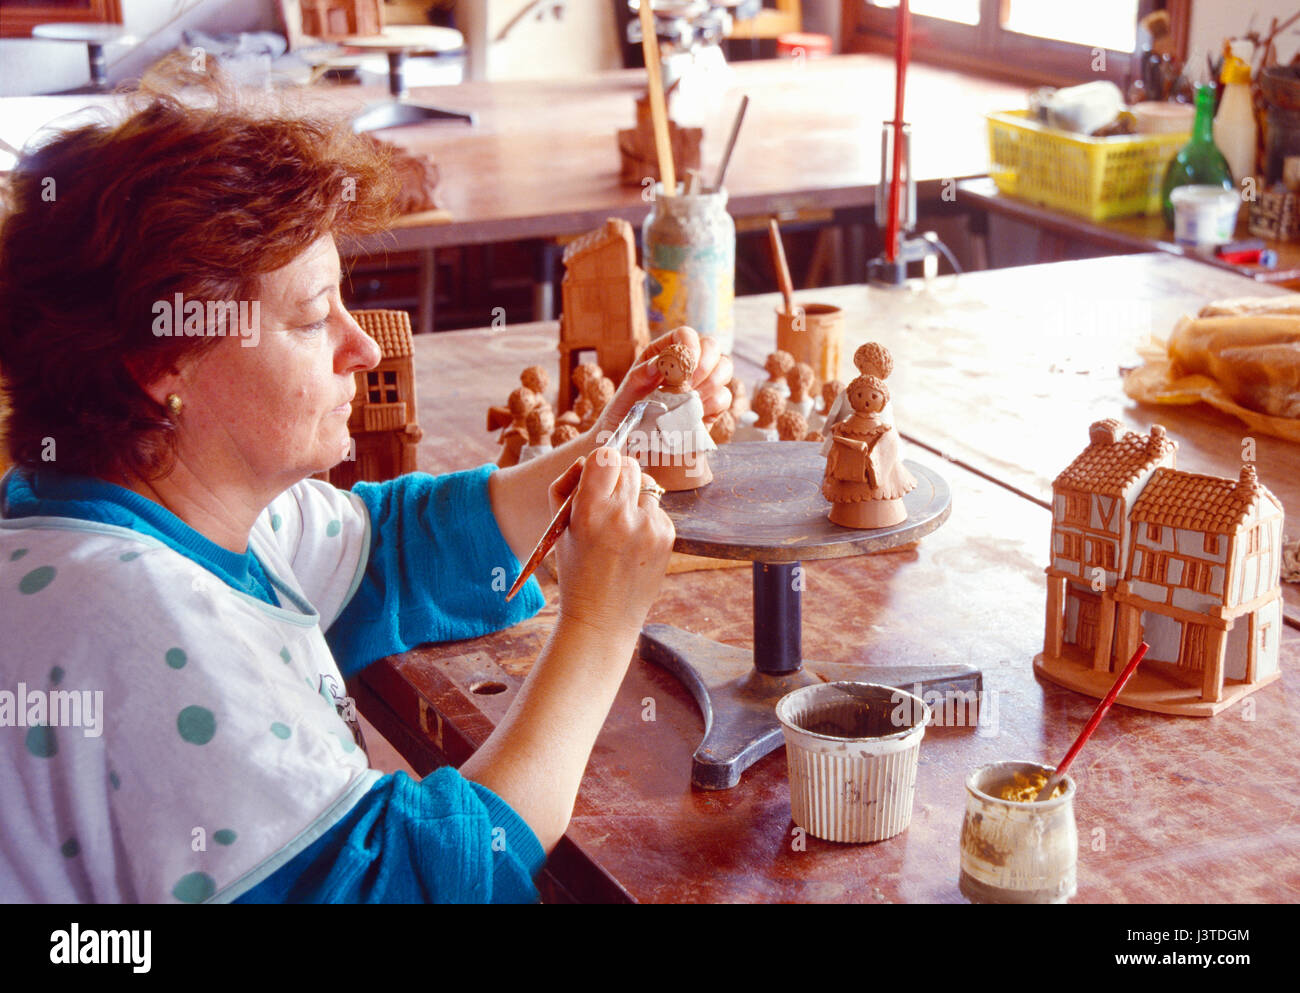 Ceramist painting clay figures. - Stock Image